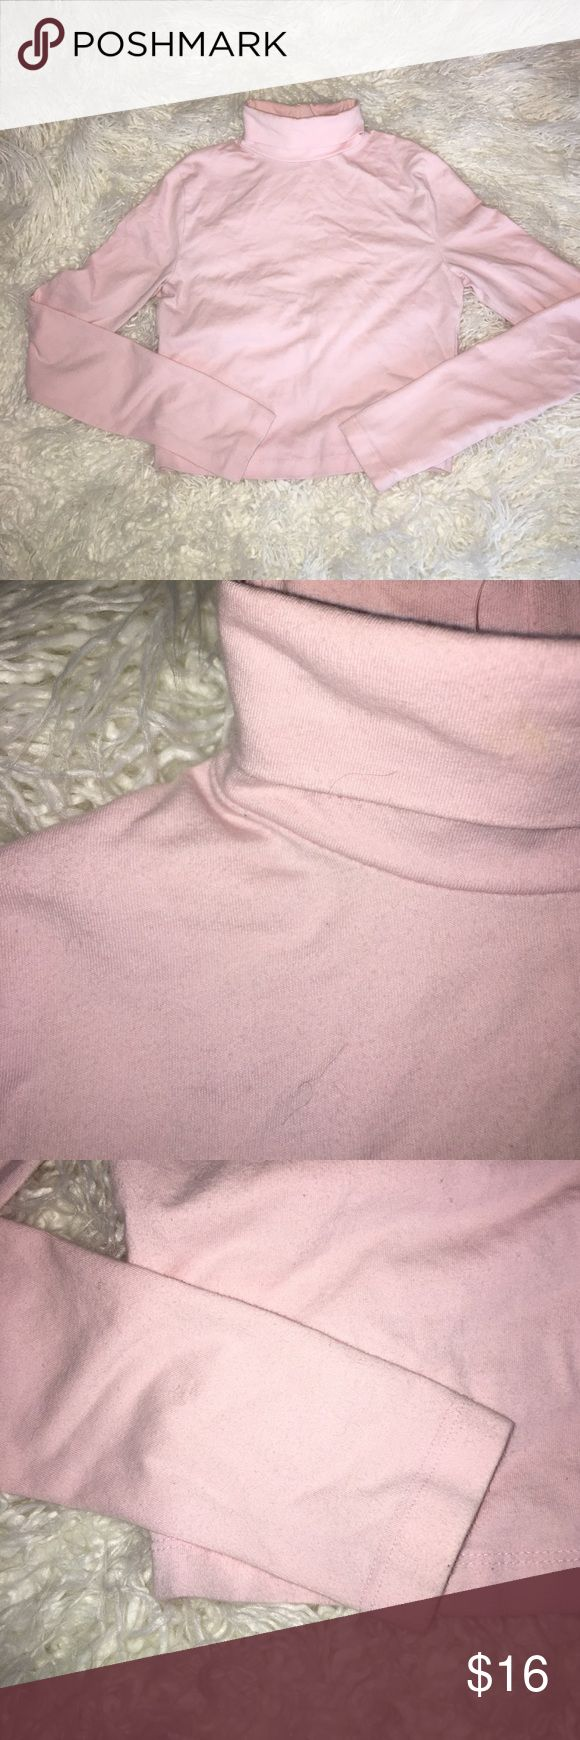 PINK cropped turtle neck basic ✨✨ Pink cropped turtleneck t shirt. Size S. Brand: Forever21. Good condition. A bit of pilling (as seen in pic). Perfect with skinny jeans and a baseball cap! 🕶💕 American Apparel Tops Tees - Long Sleeve